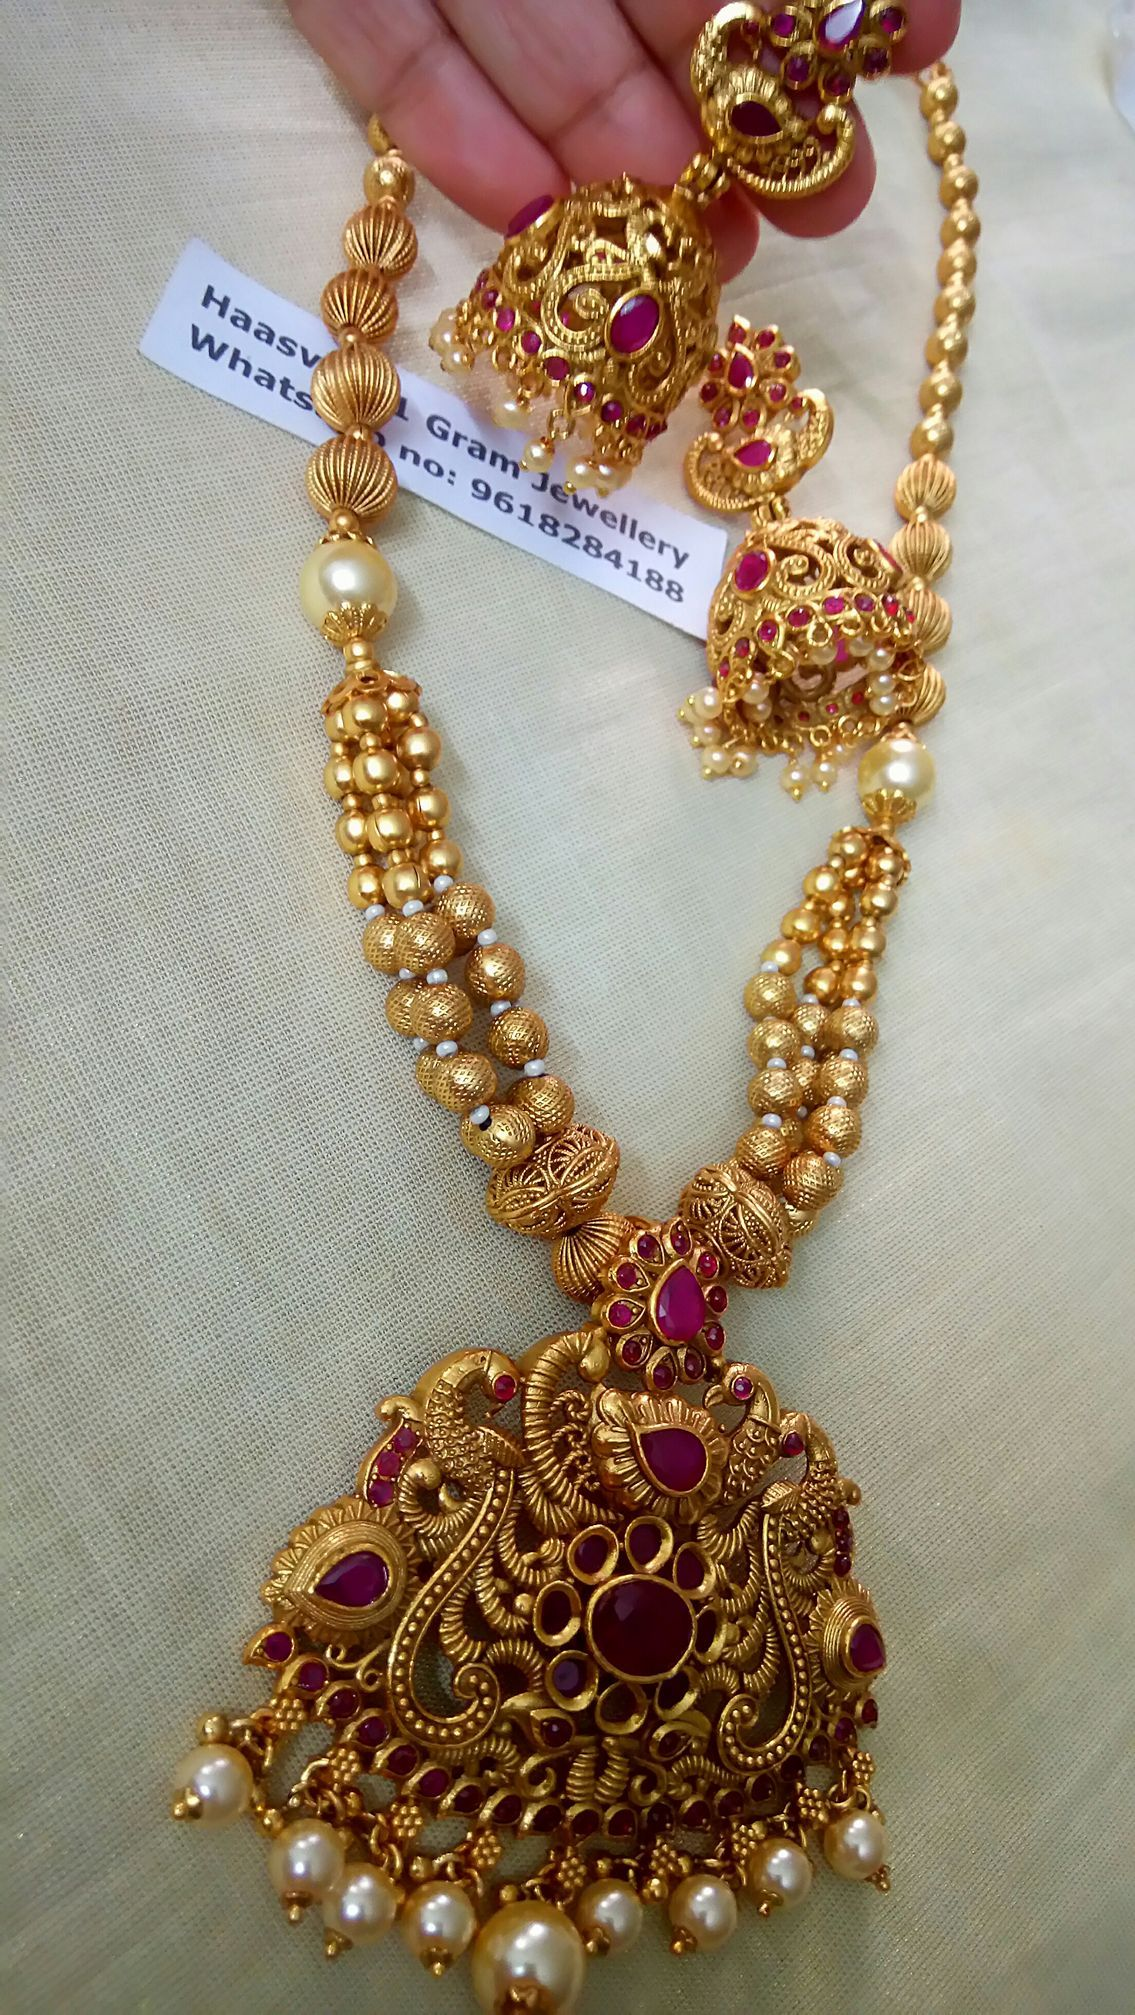 eac45b1039 Beautiful long chain with one gram gold ball chain. Long haaram with  swimming swan design pendant. Long haaram with pearl hangings.